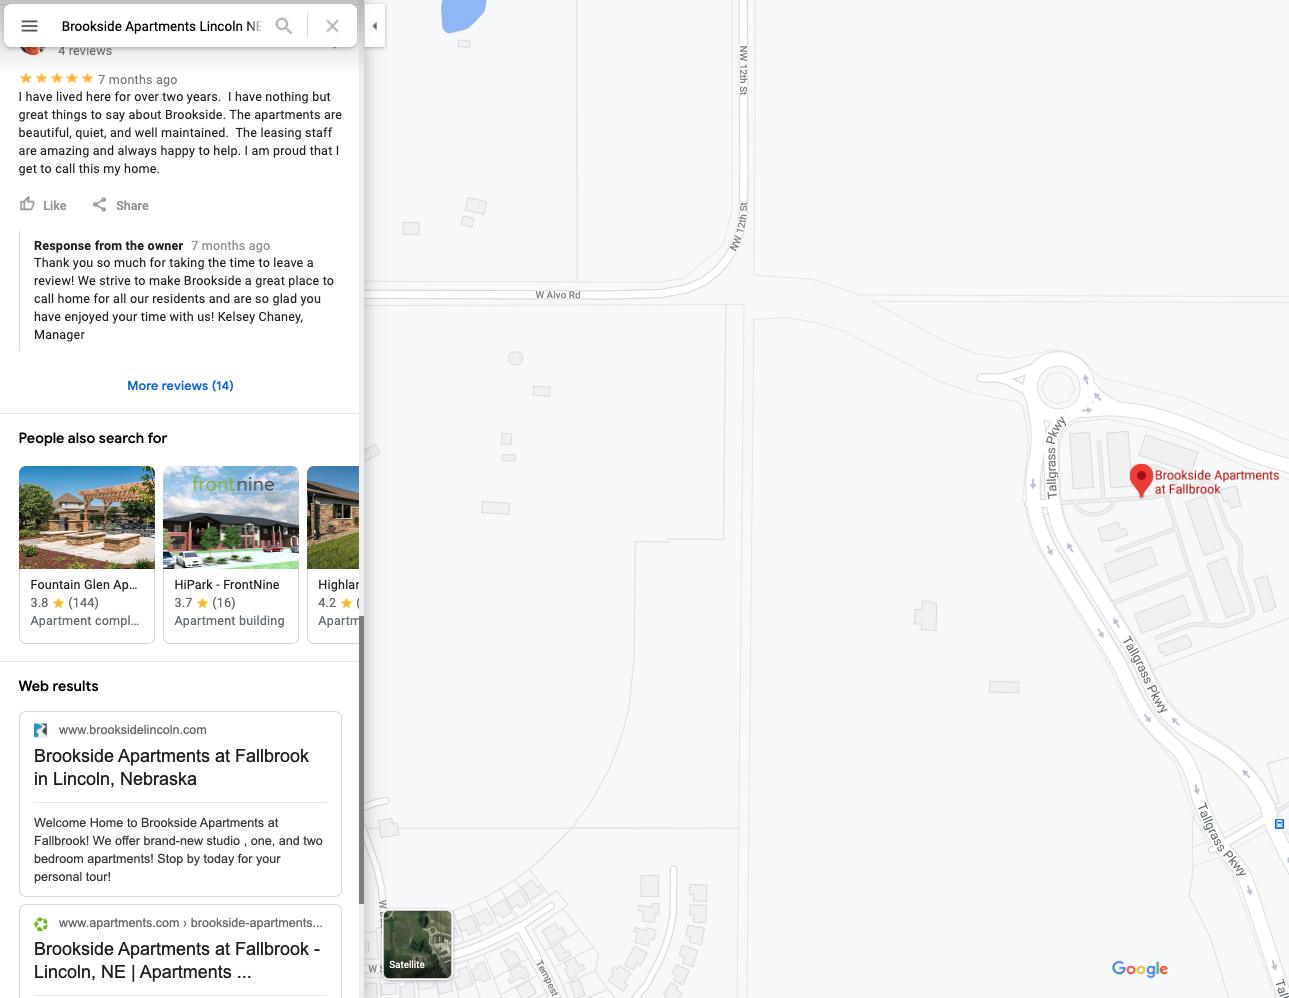 google-maps-with-search-results-screenshot